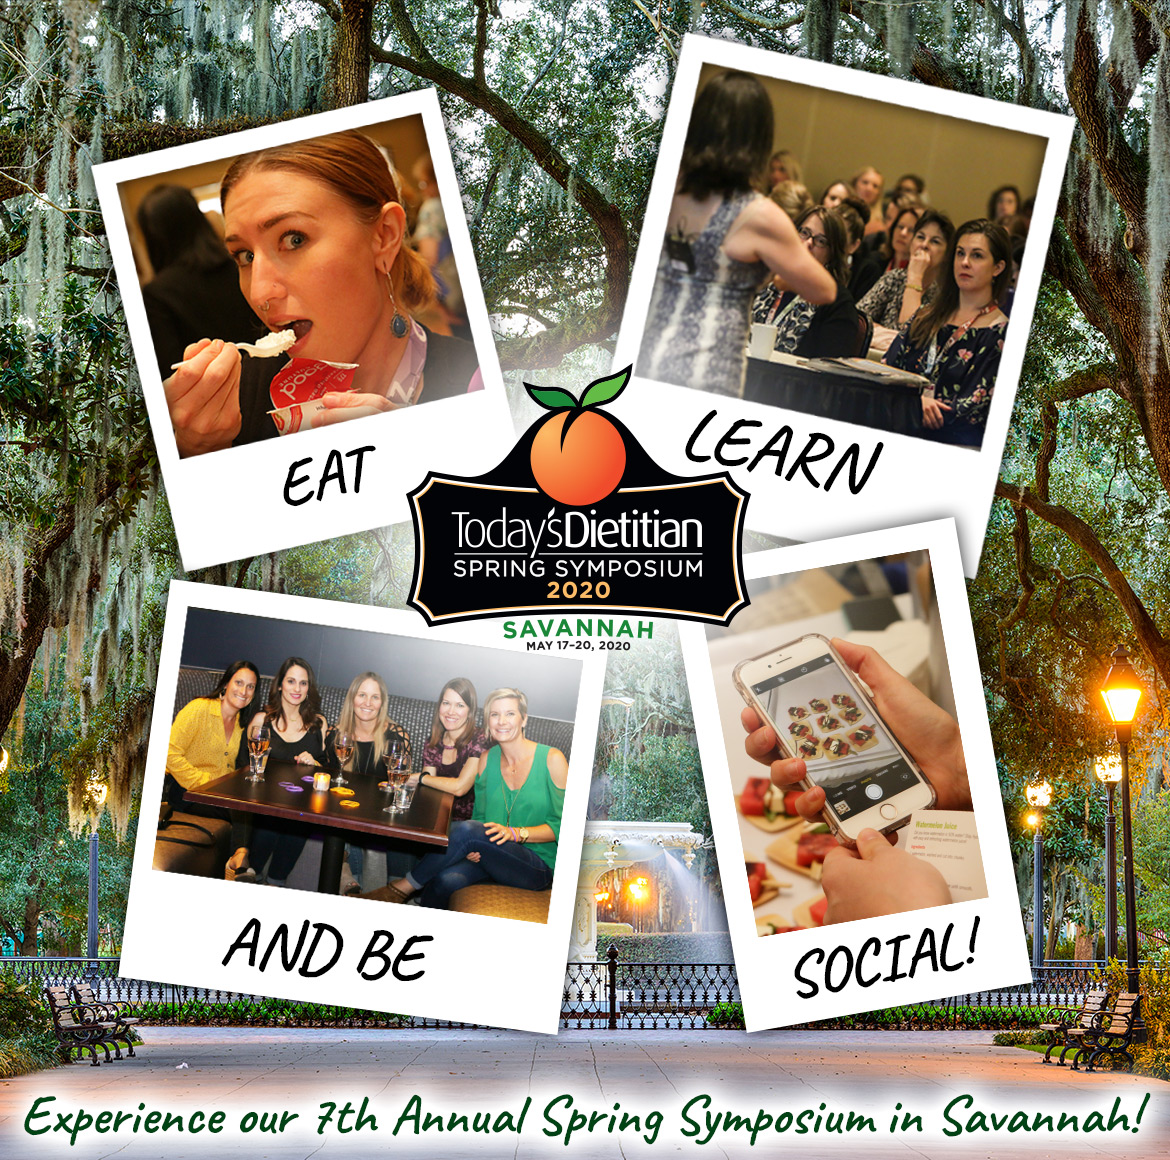 Eat, Learn and Be Social! Experience our 7th Annual Spring Symposium in Savannah! May 17-20, 2020, Savannah, GA